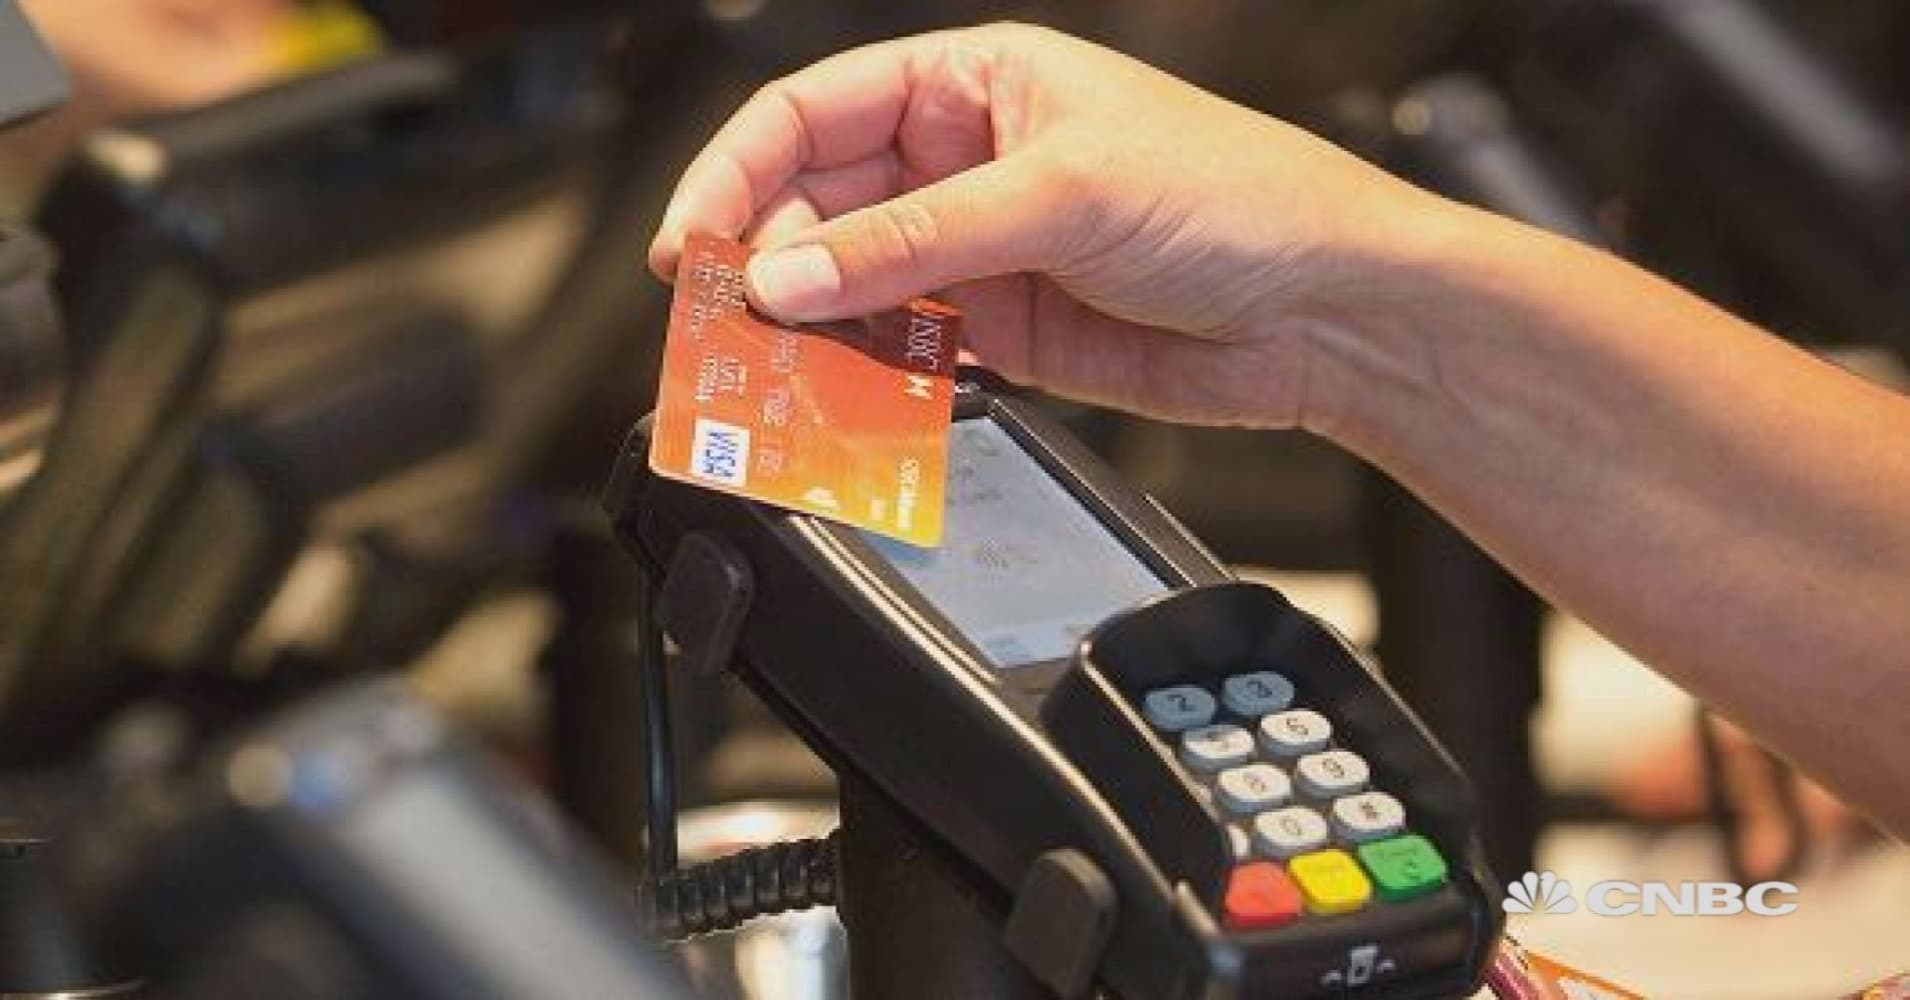 Some cryptocurrency-backed cards dropped from Visa network